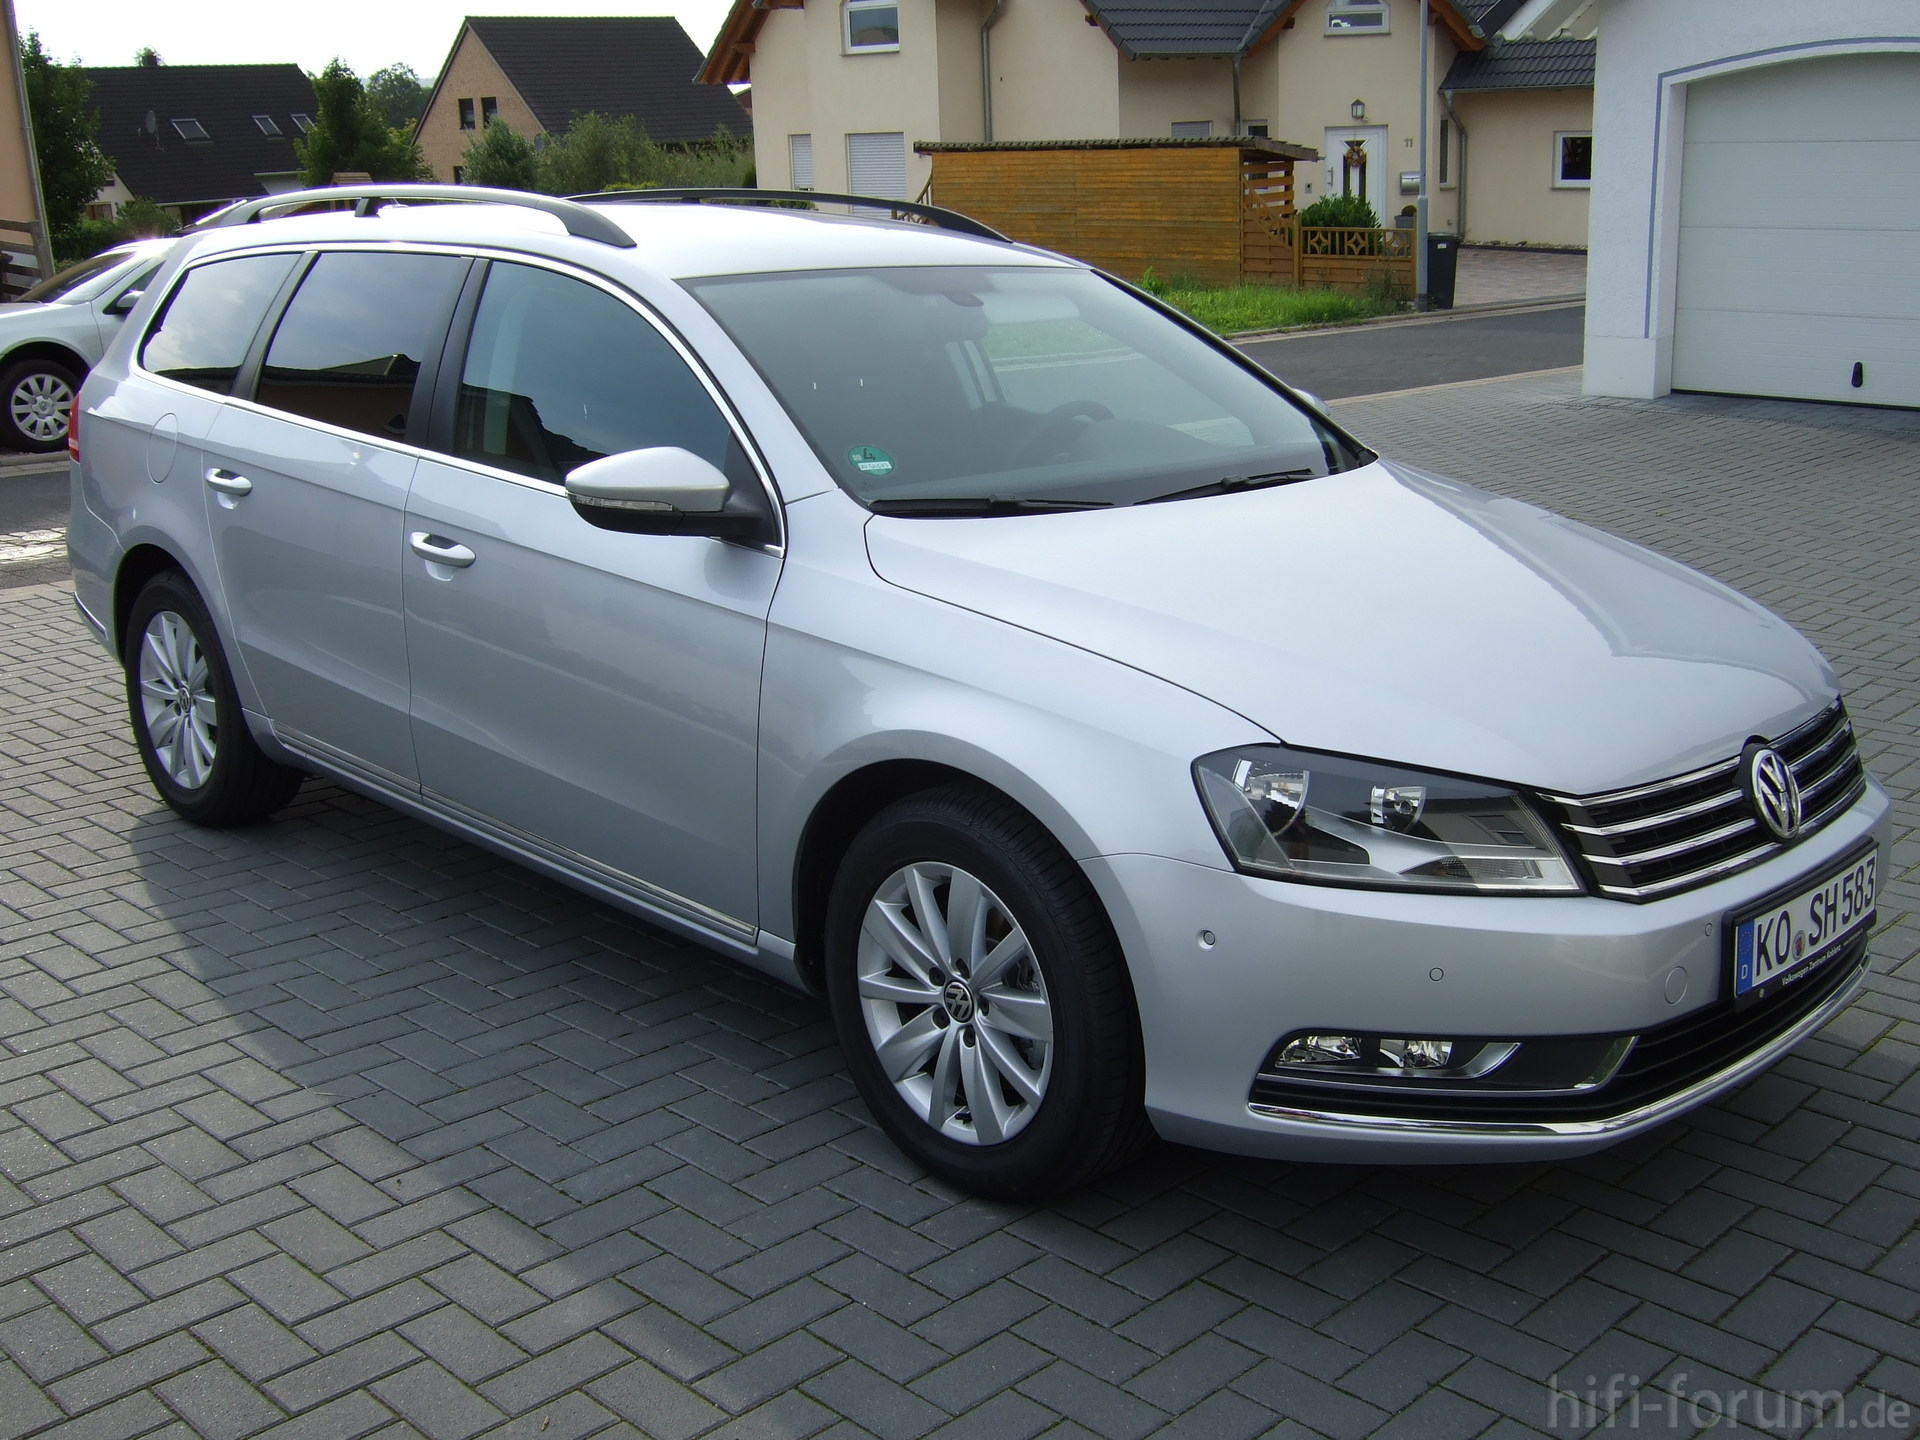 passat b7 variant 2 0 tdi bmt comfortline b7 bmt comfortline passat tdi variant hifi. Black Bedroom Furniture Sets. Home Design Ideas